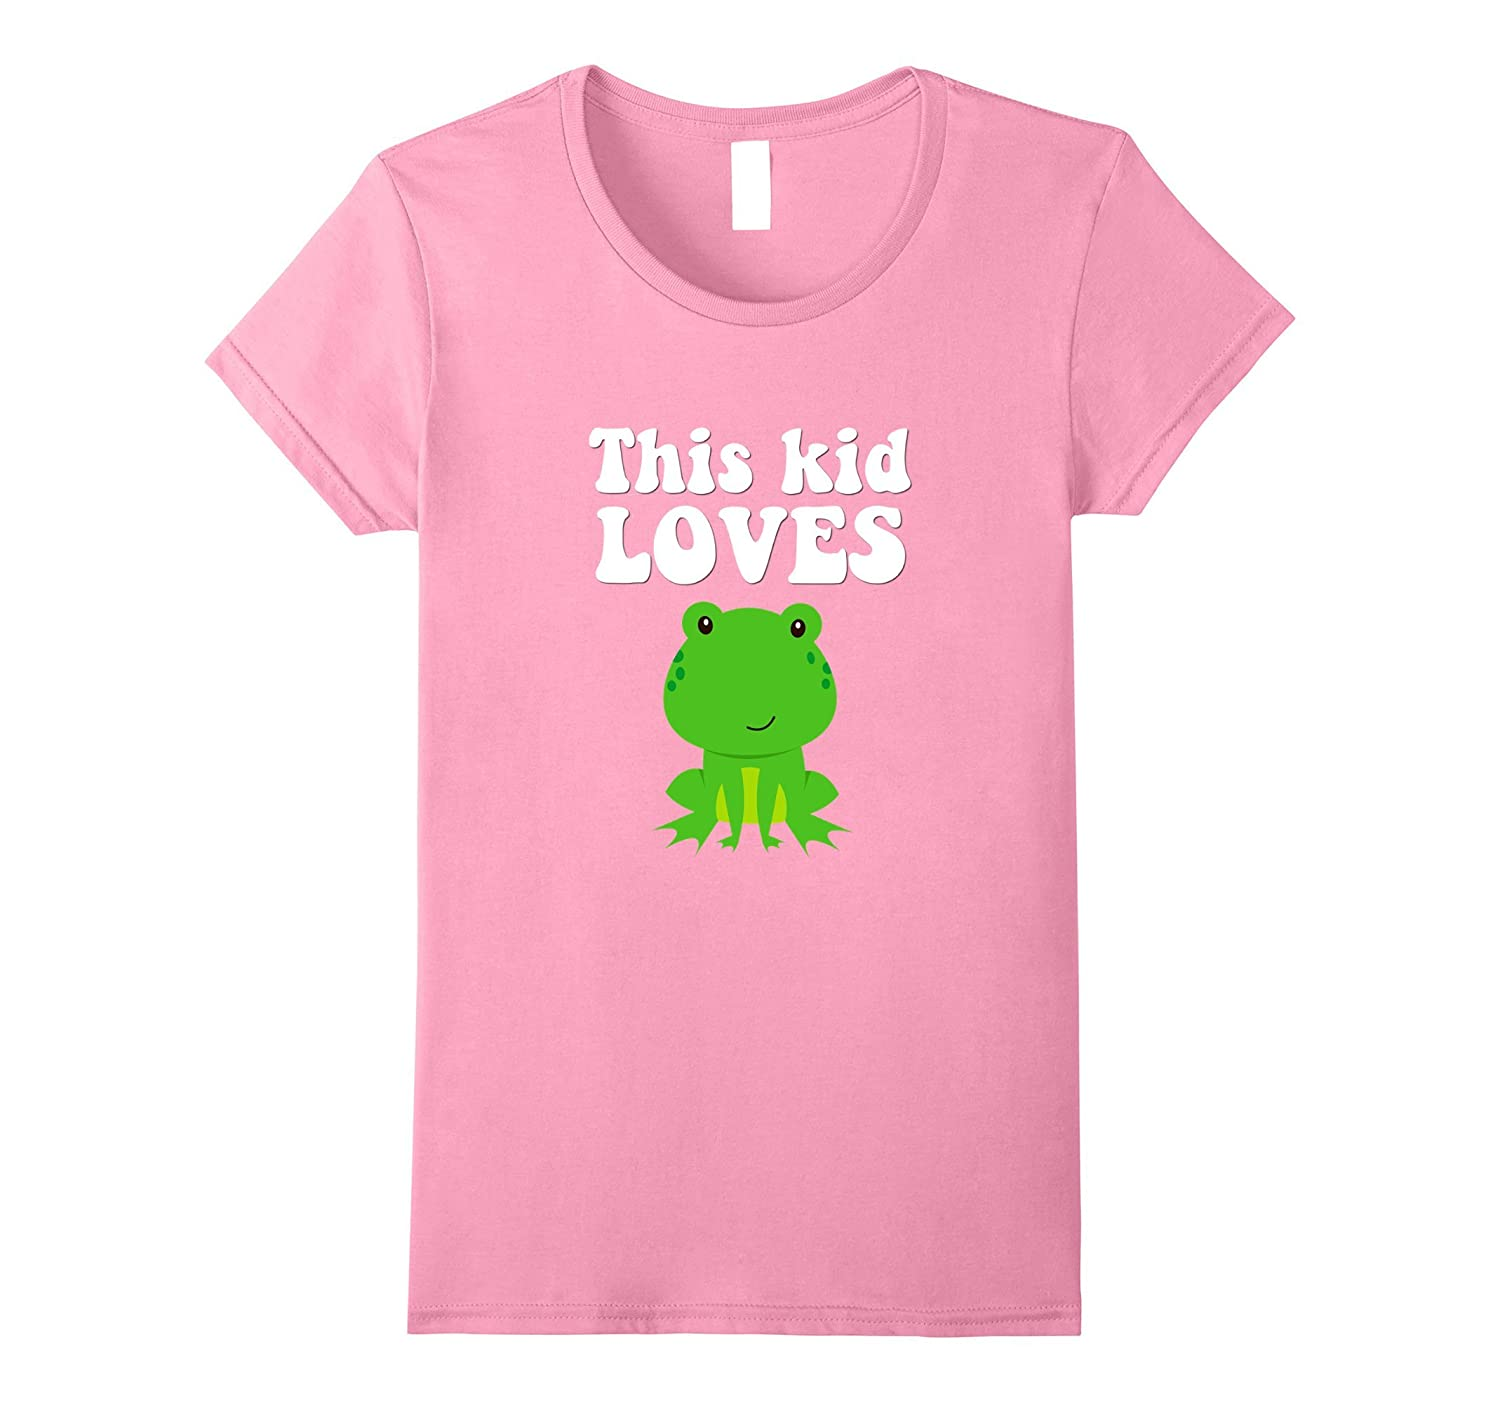 This Kid Loves Frogs Cute Funny Animal T-Shirts Girls Boys